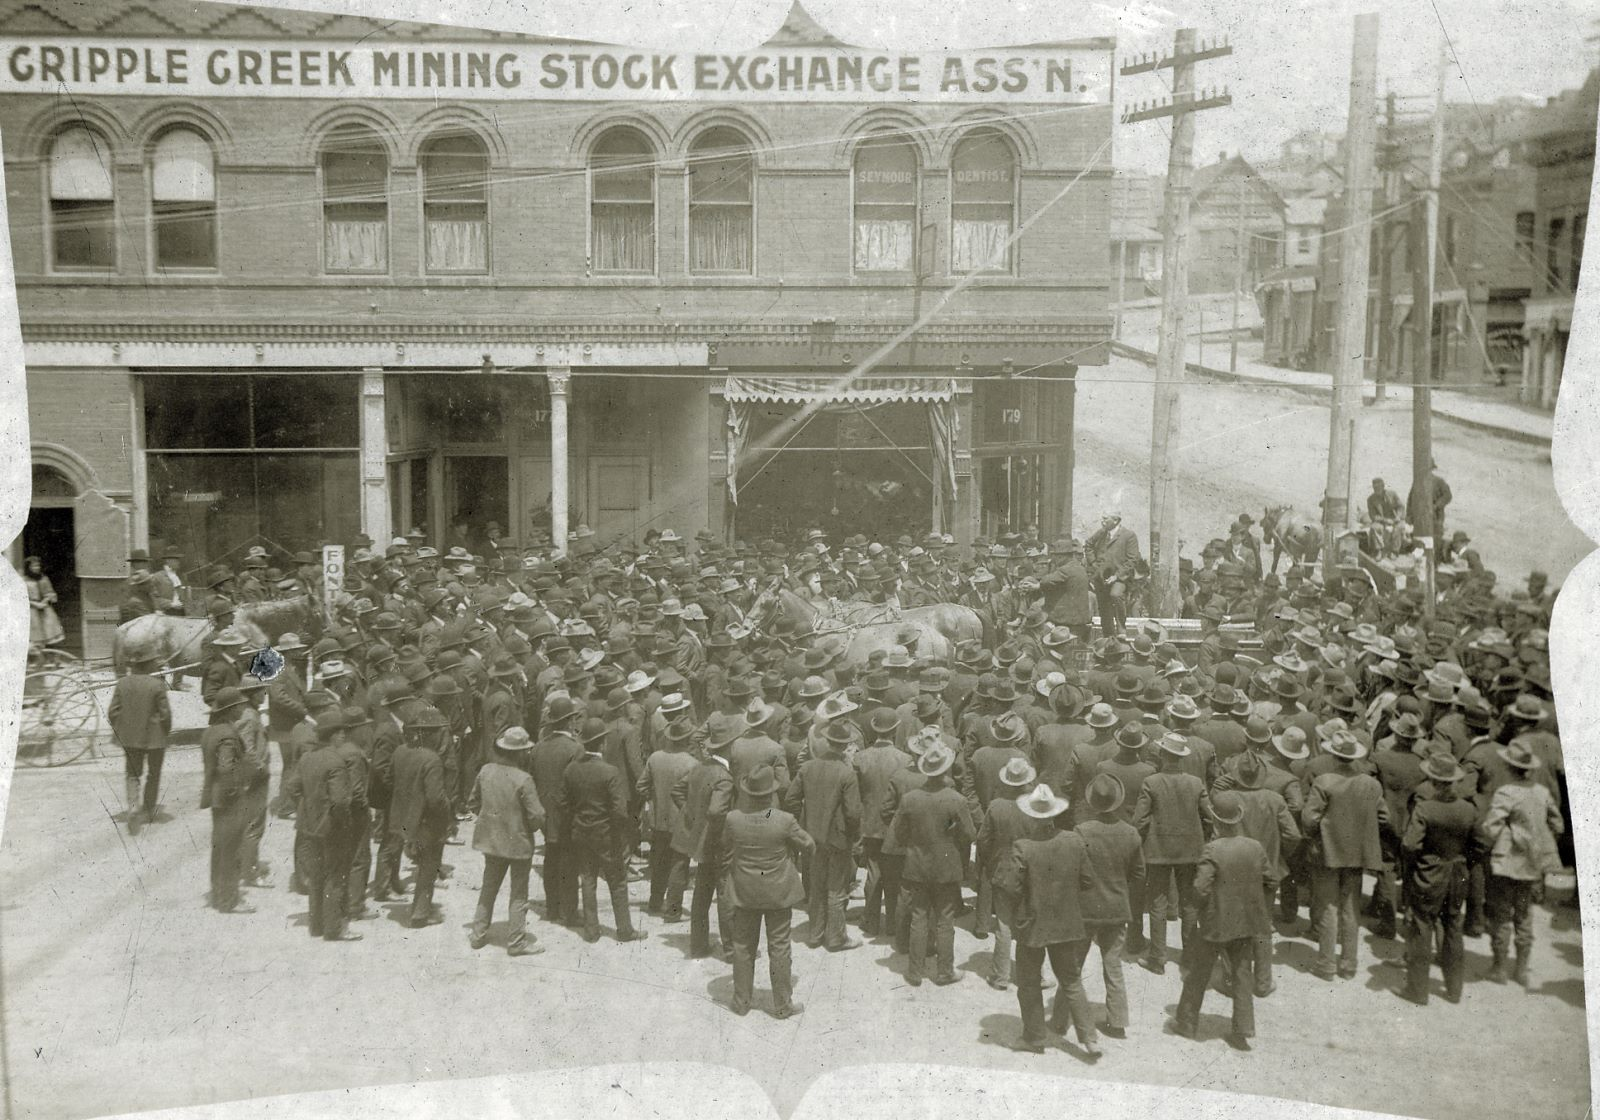 A View of a Large Crowd of People Outside the Cripple Creek Stock Exchange Building in Cripple Creek